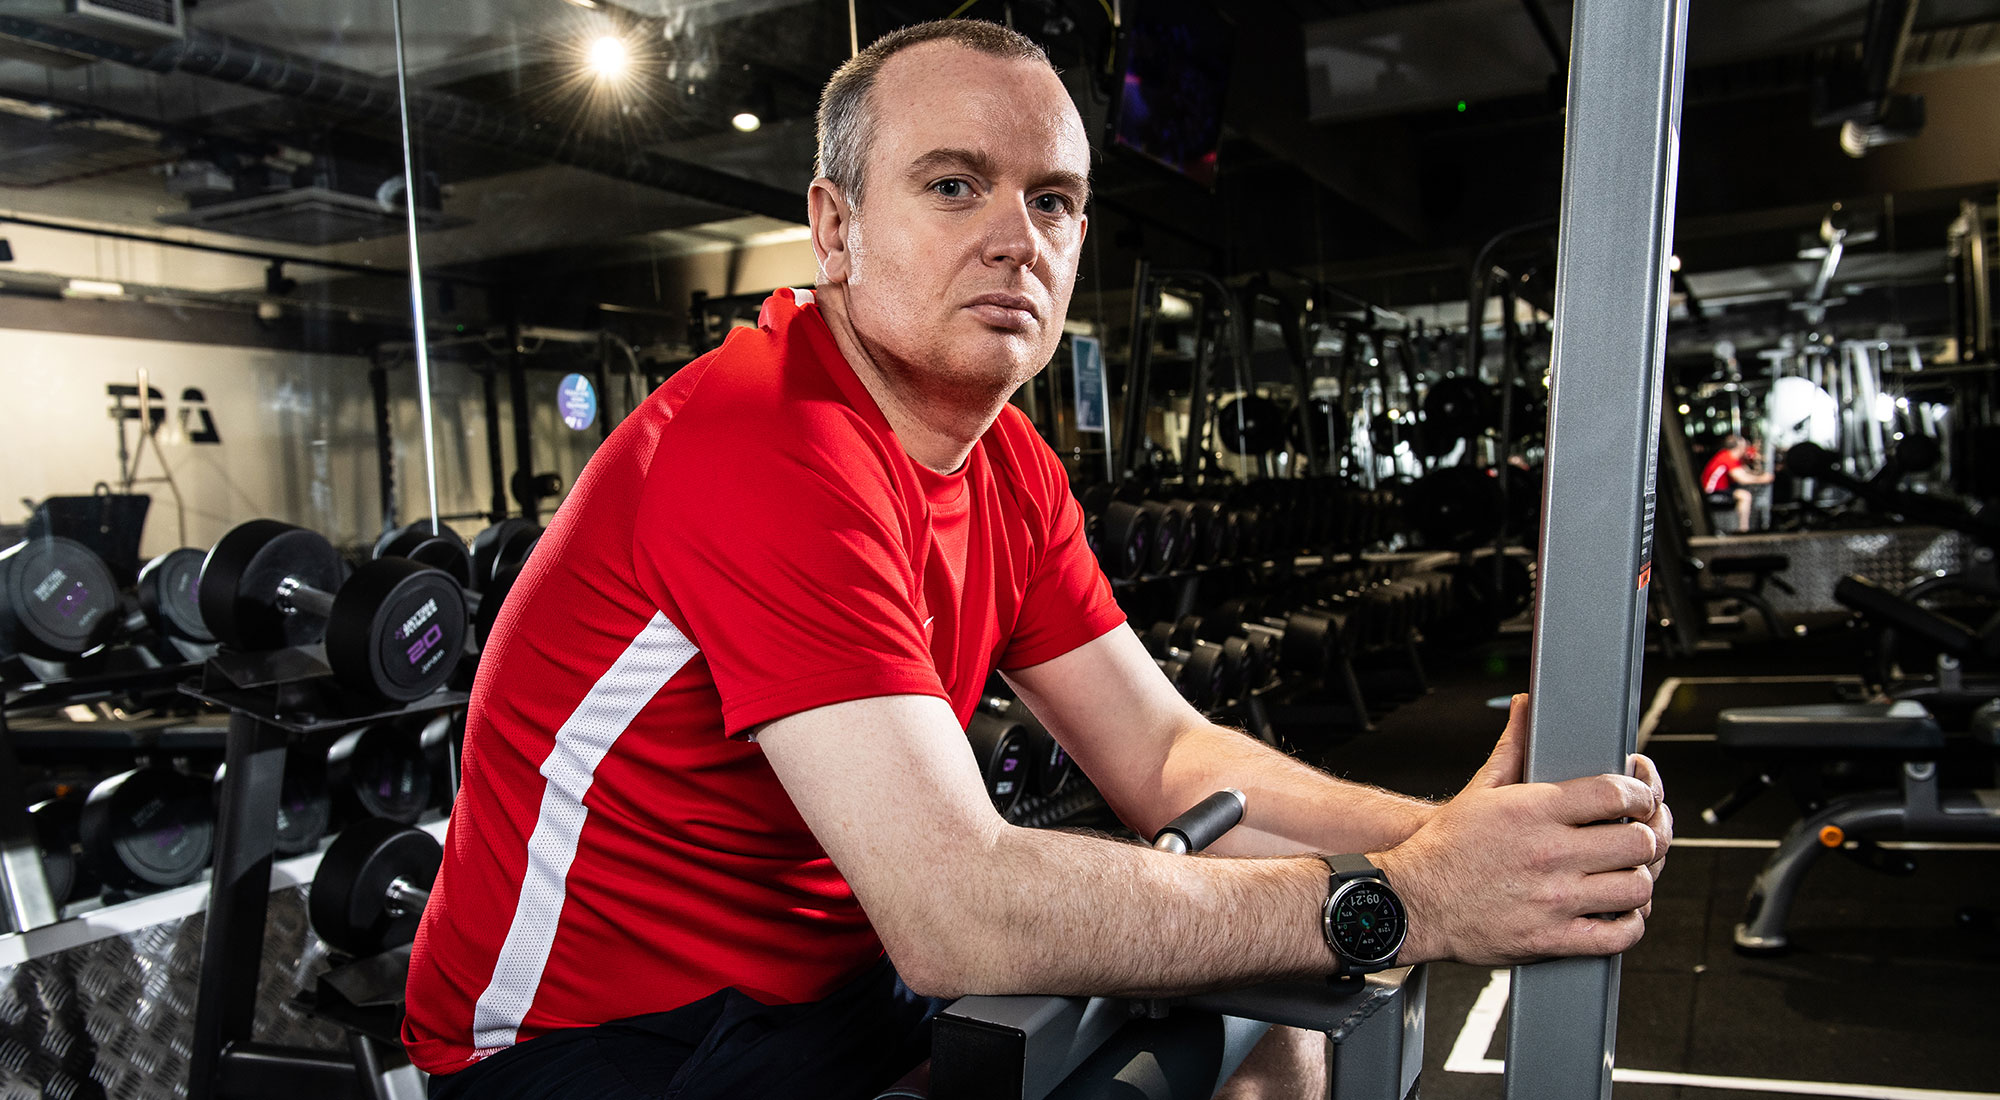 'My gym helped save me, mentally and physically' – former chef gets his life back after losing his vision to rare condition